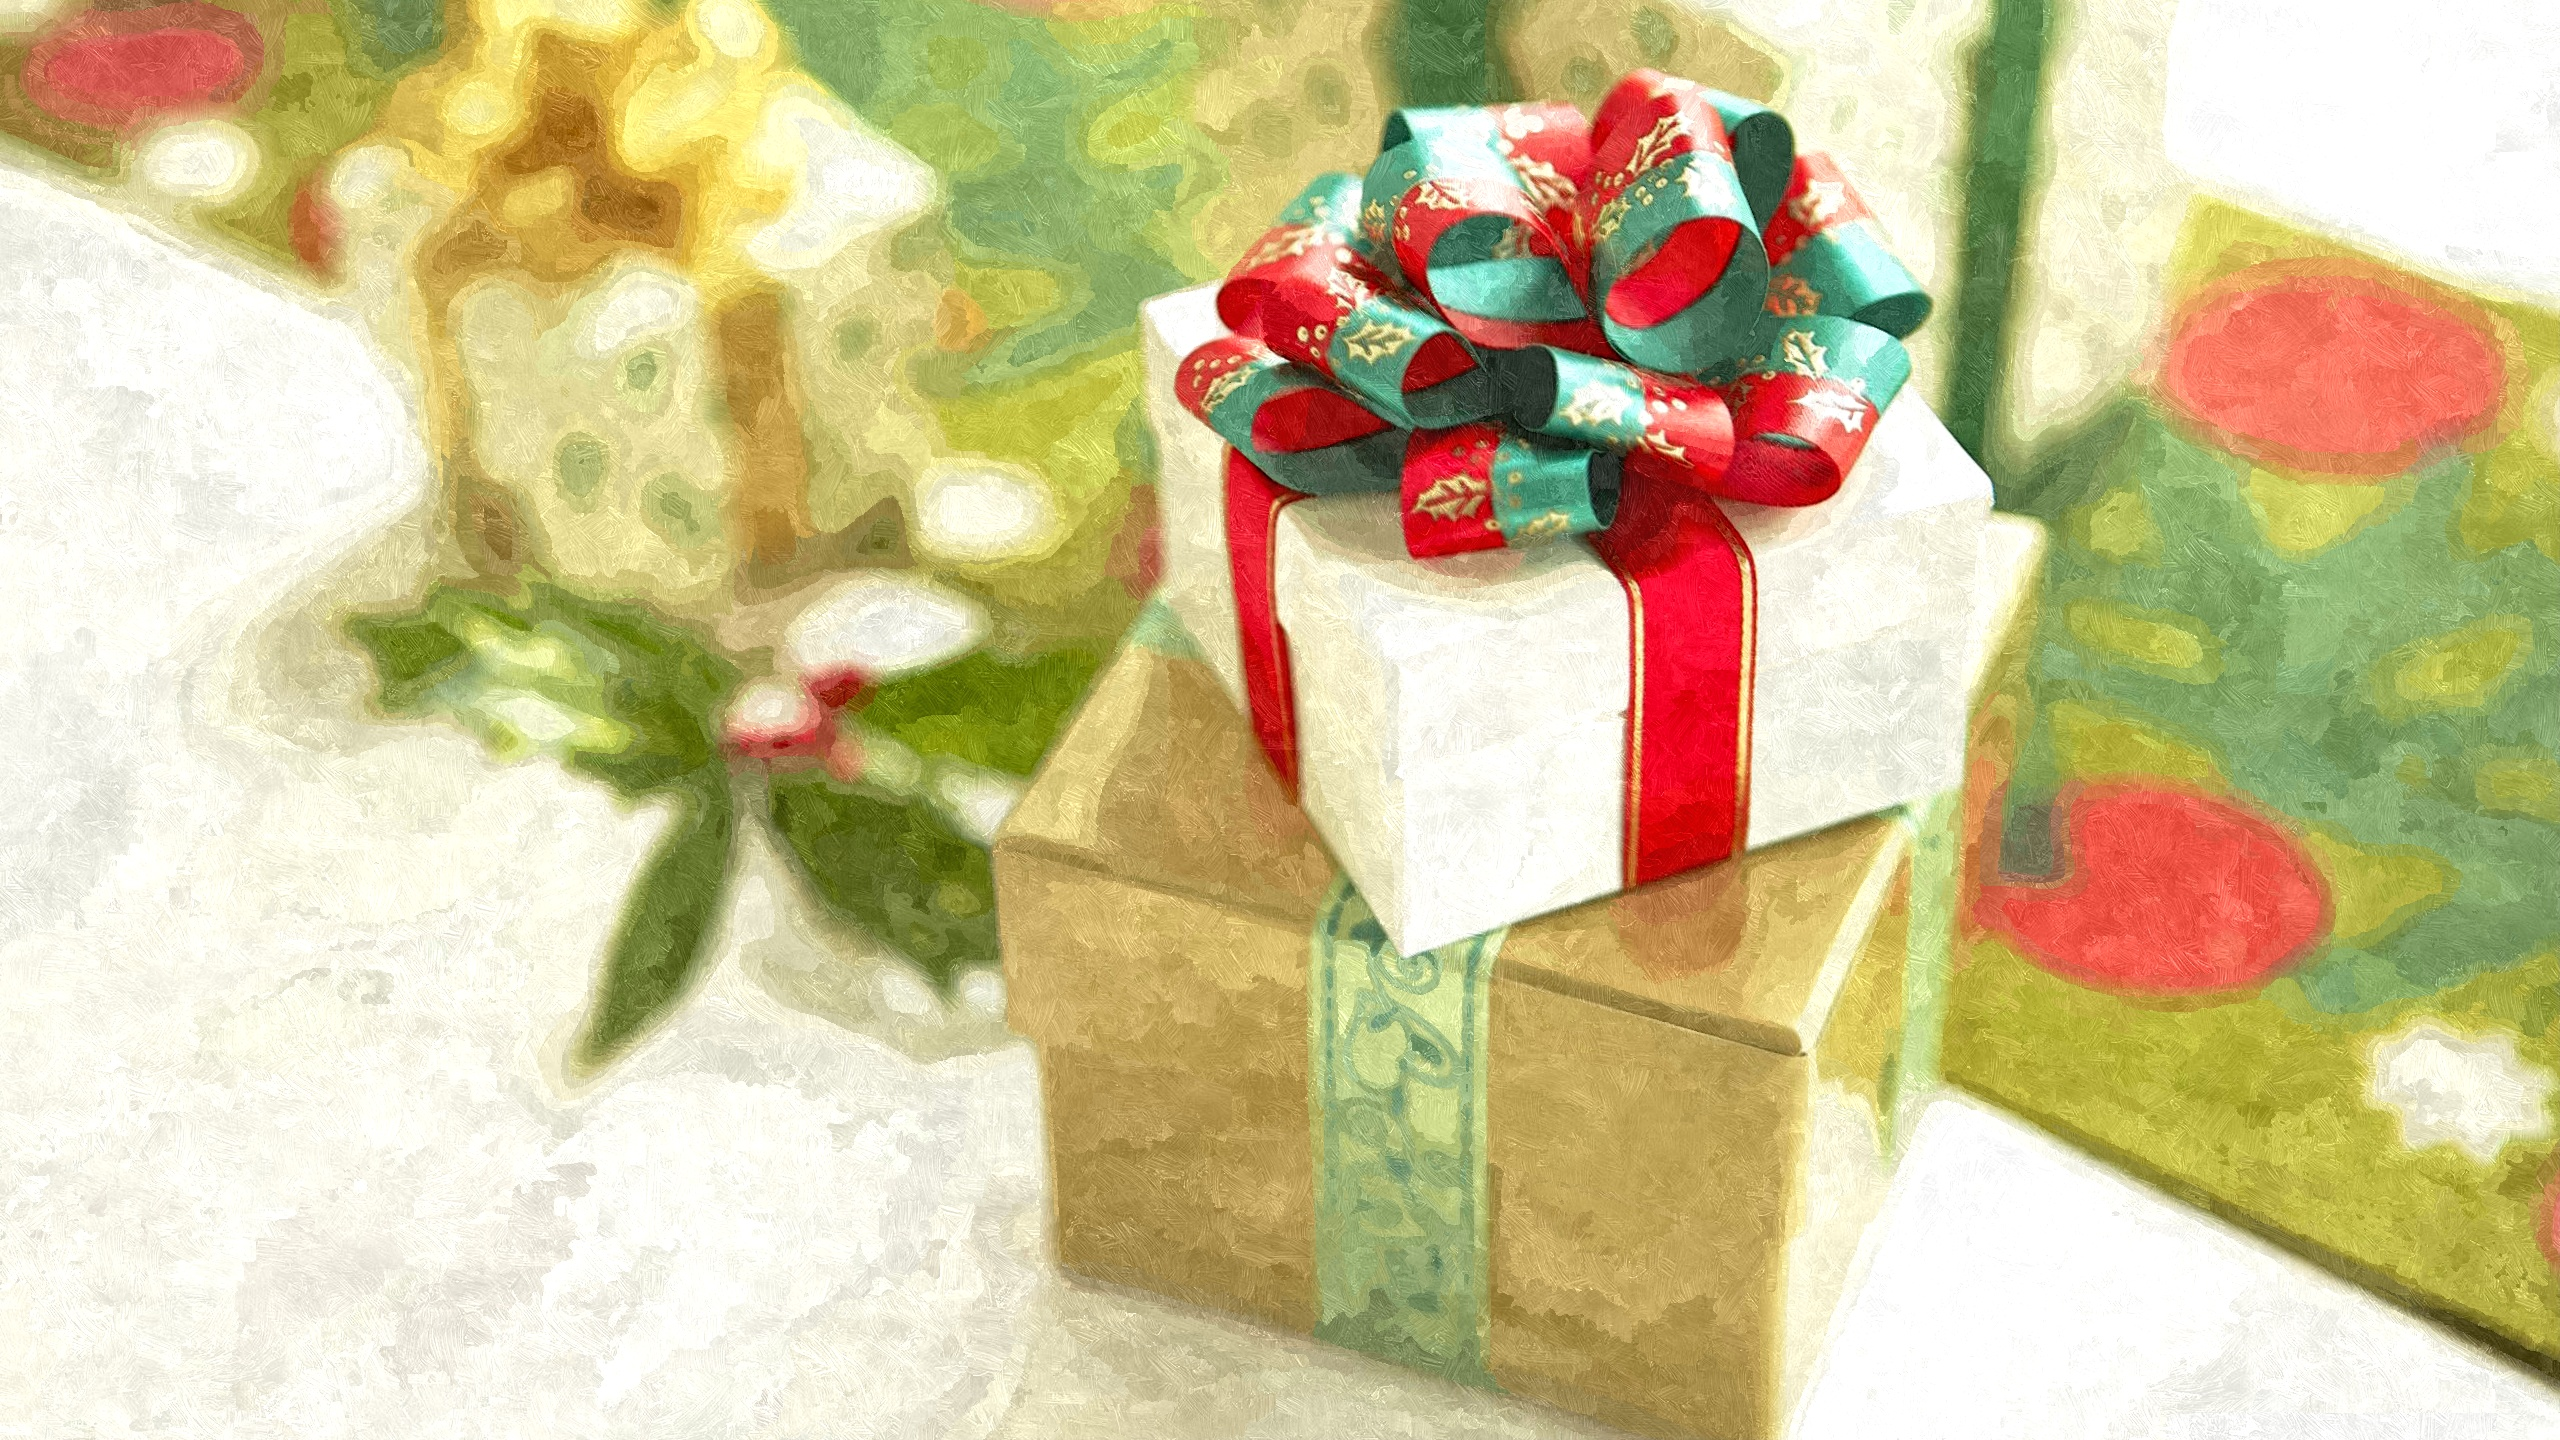 christmas_gifts_2011-wallpaper-2560x1440